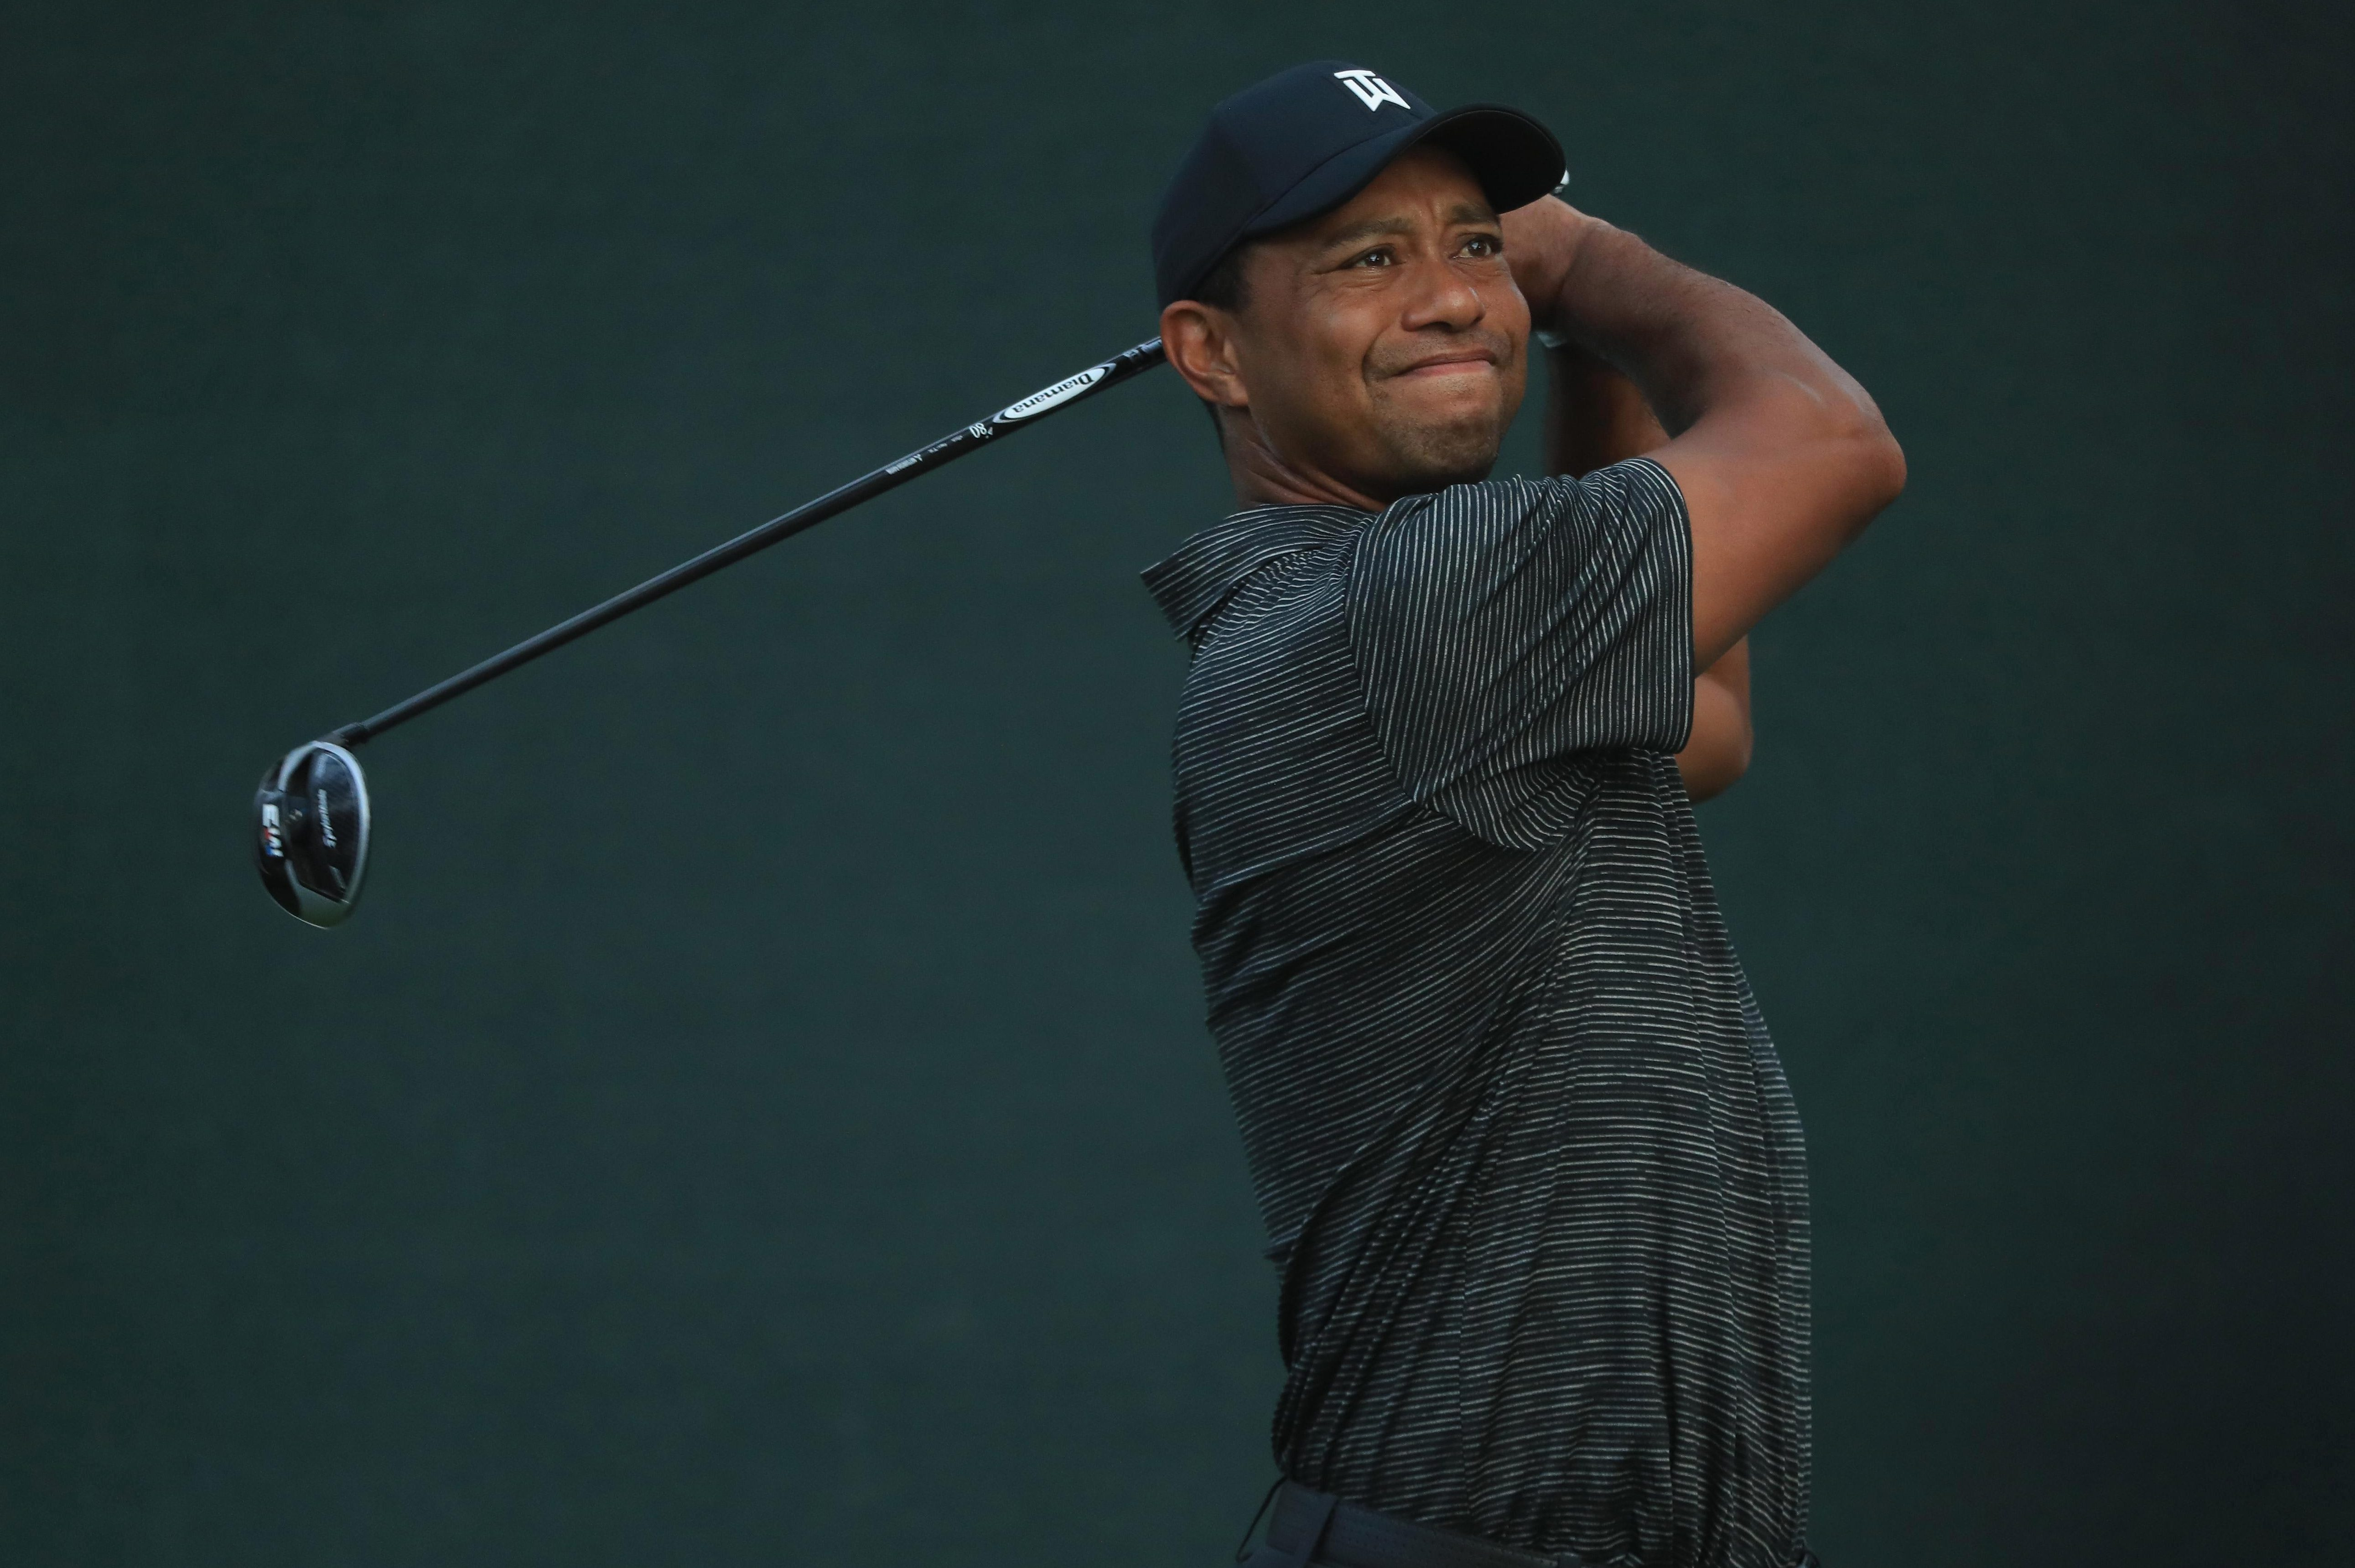 Tiger Woods is back on form and pushing for Major titles again